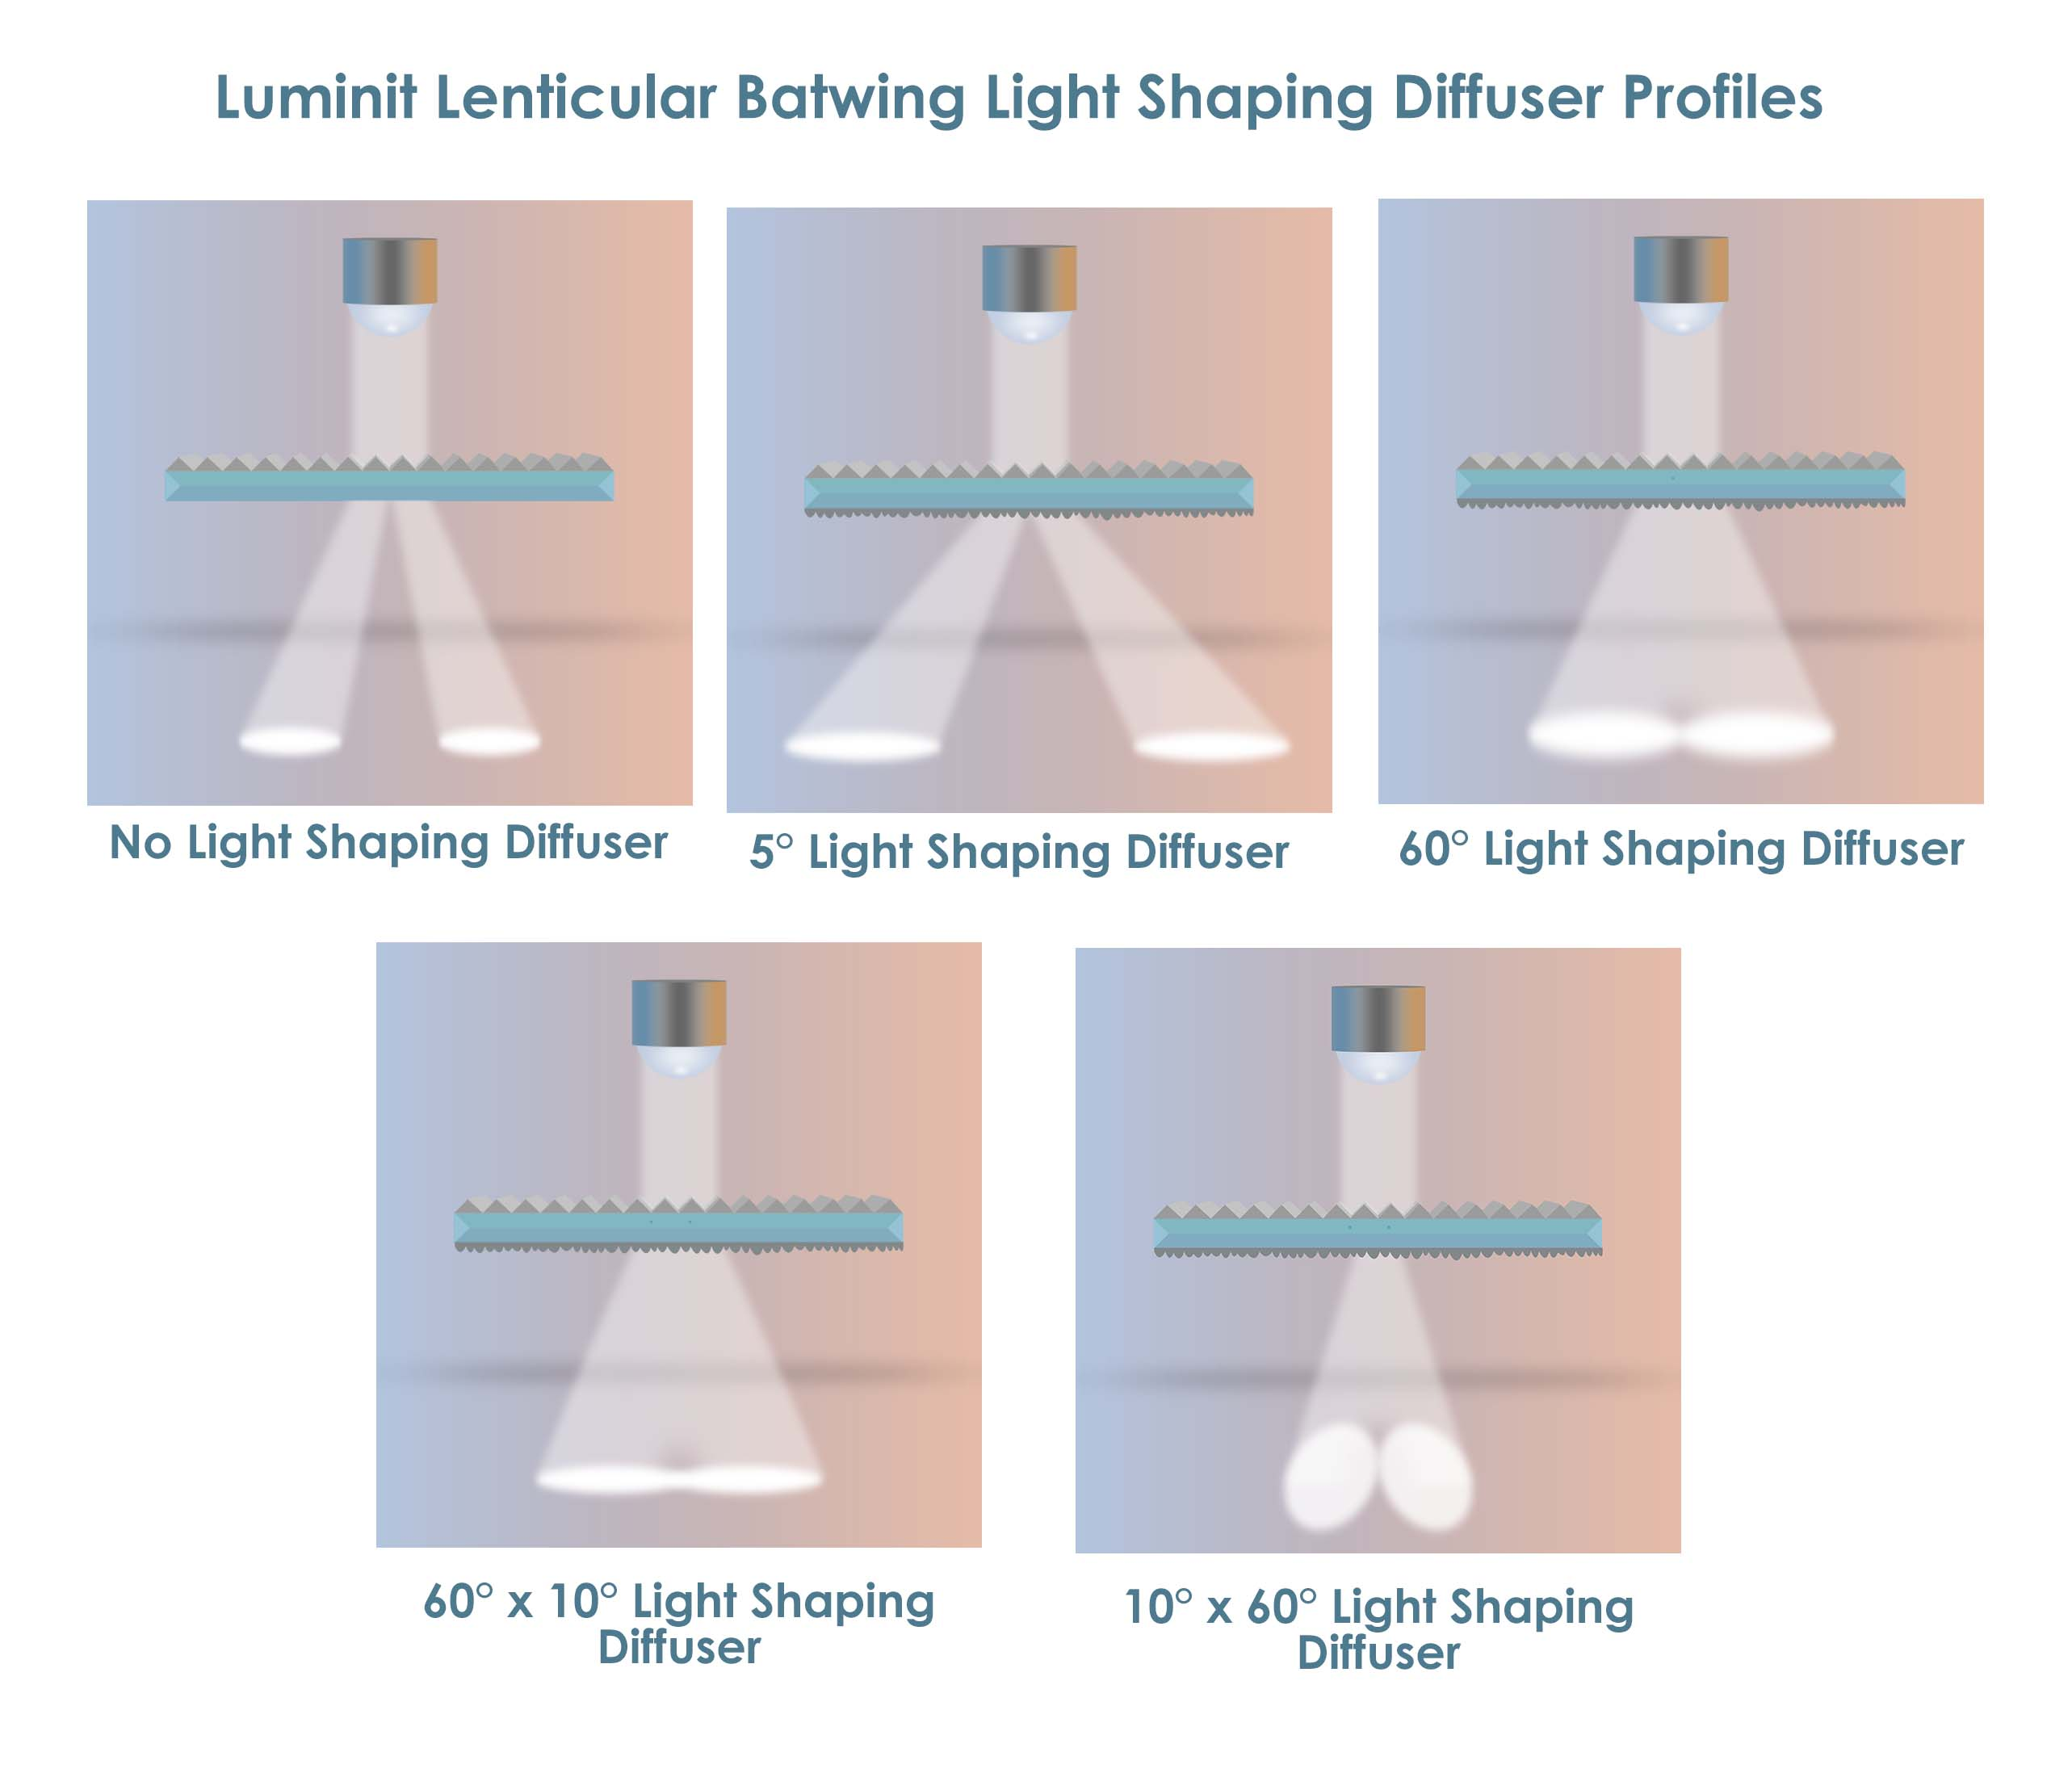 Lenticular Batwing Diffusers (LBD) for Linear Light Fixtures